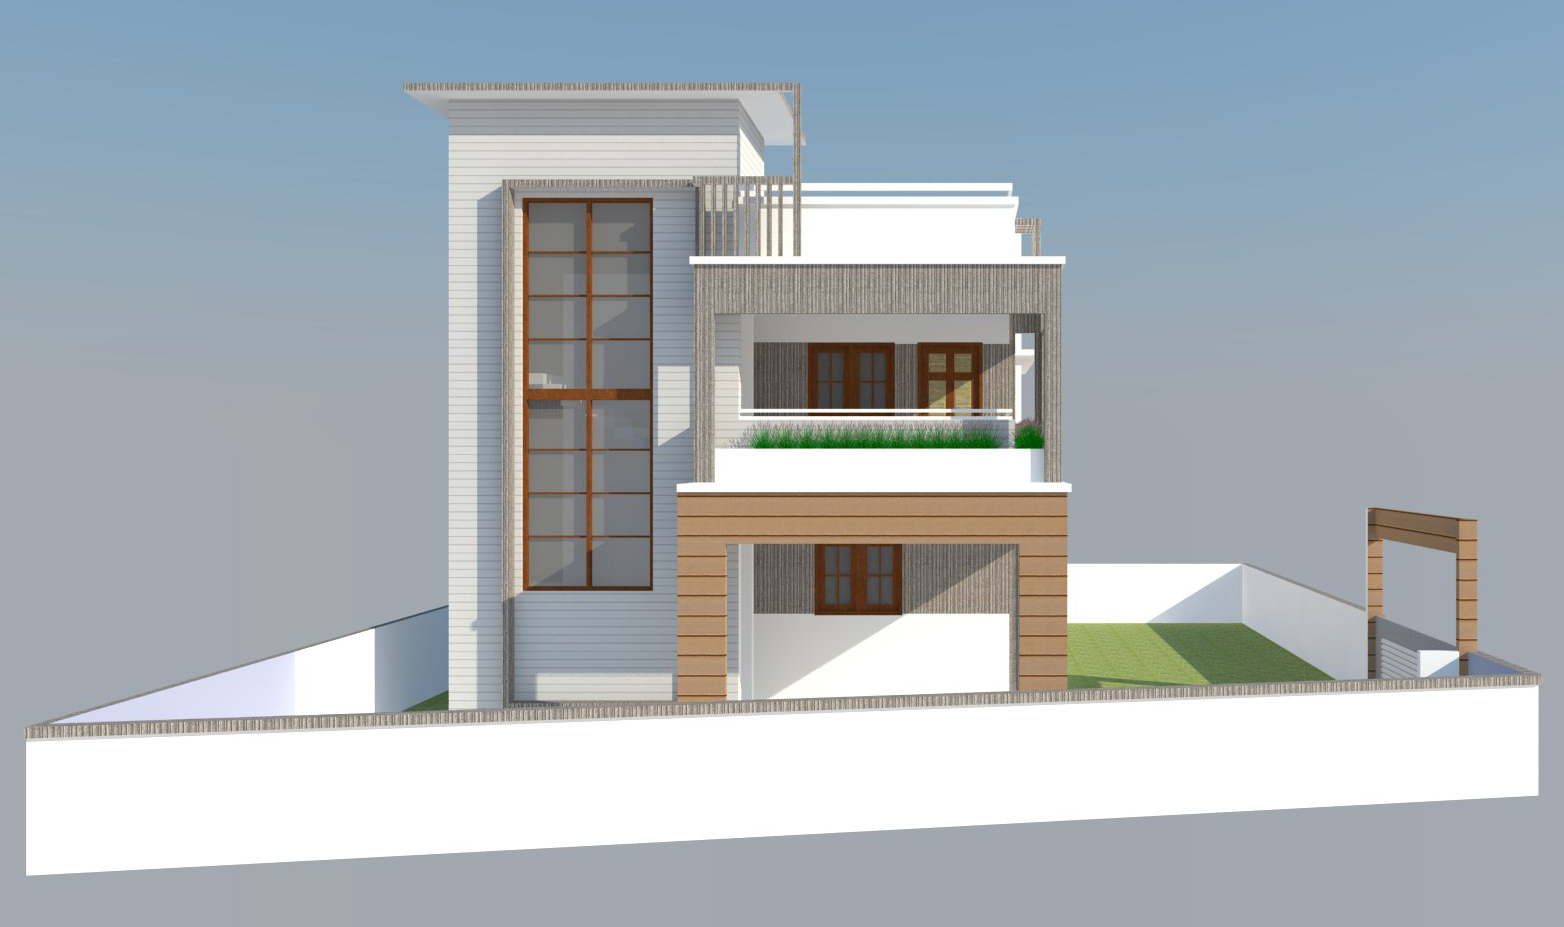 Front Elevation Pictures Free Download : Free download front elevation building image in interior